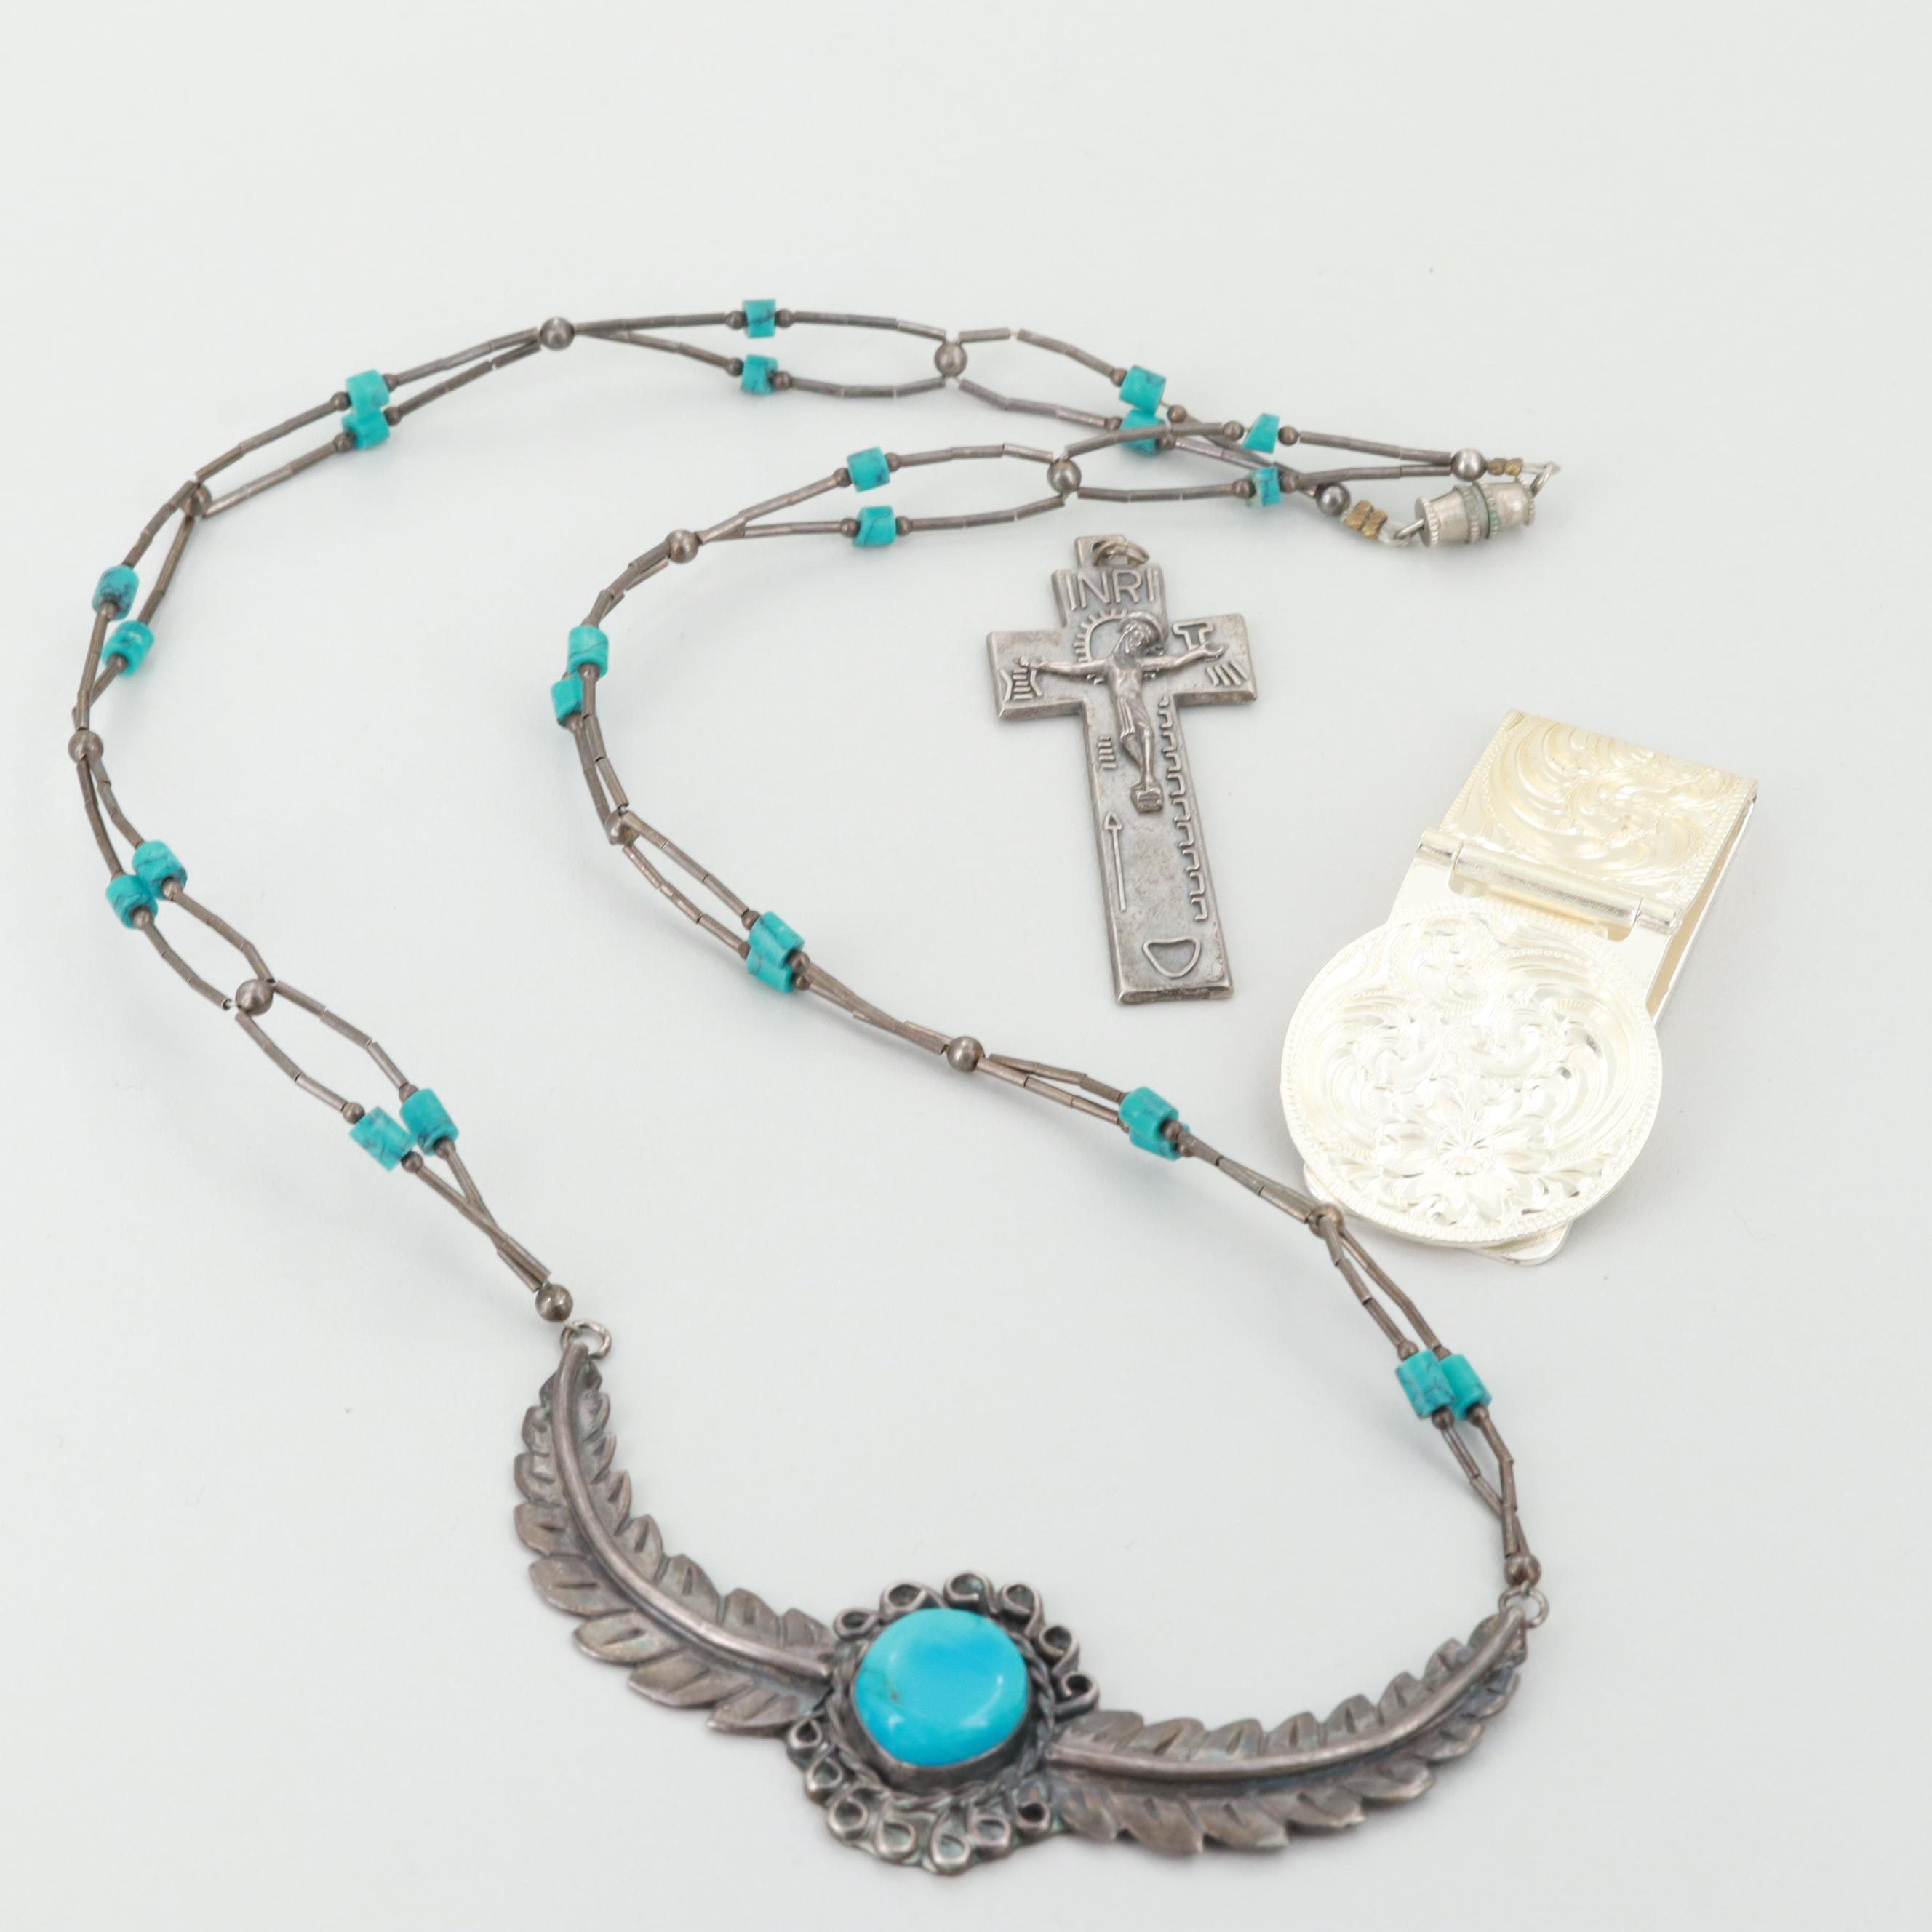 Sterling Silver Turquoise and Resin Necklace and Silver Tone Jewelry